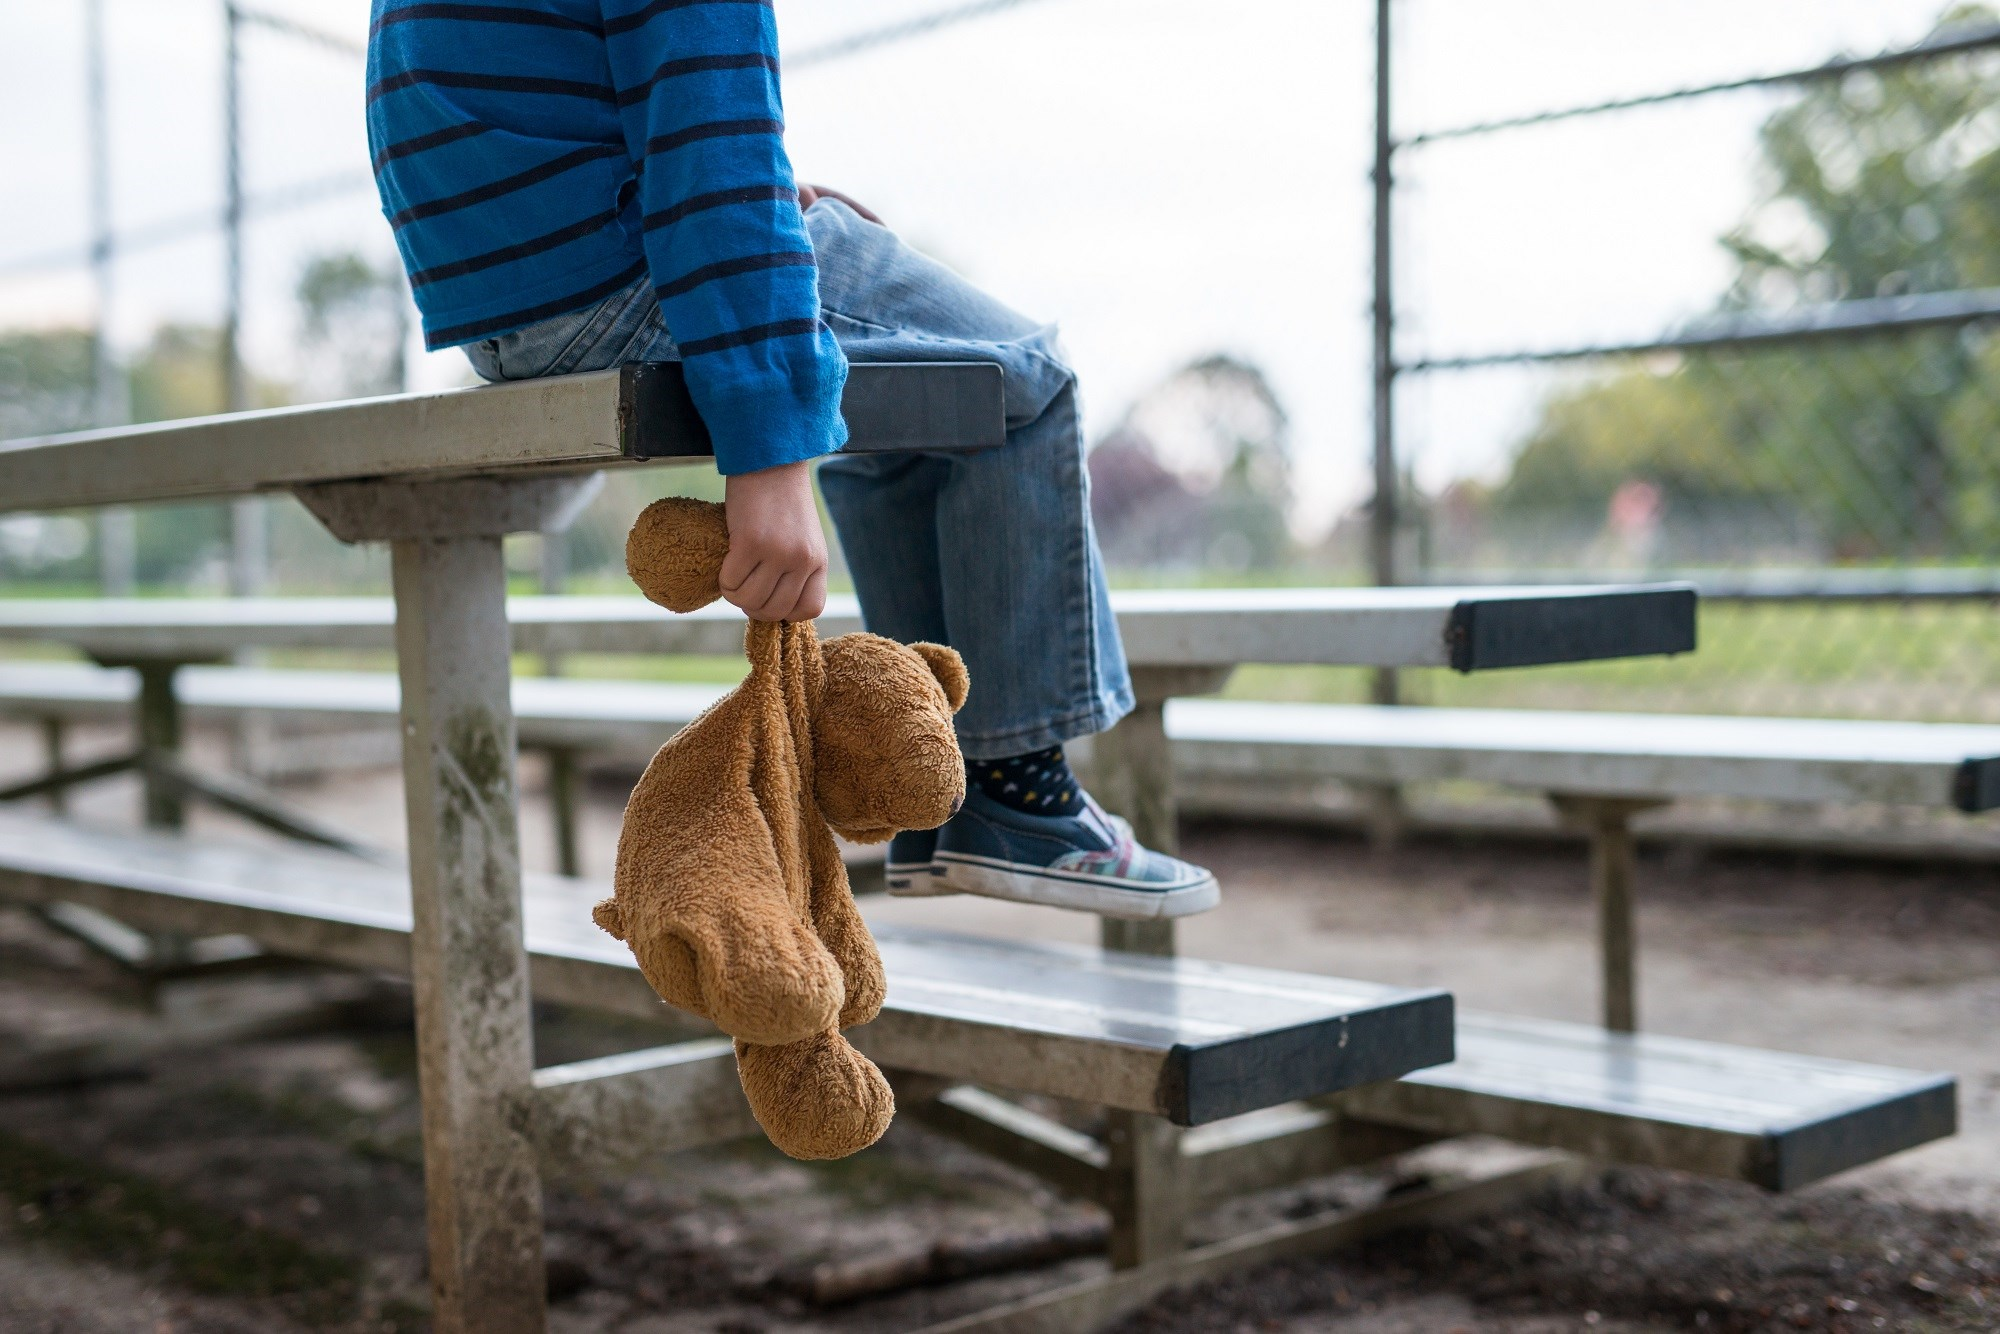 These data suggest a strong correlation between childhood mistreatment and engagement in self-harm.